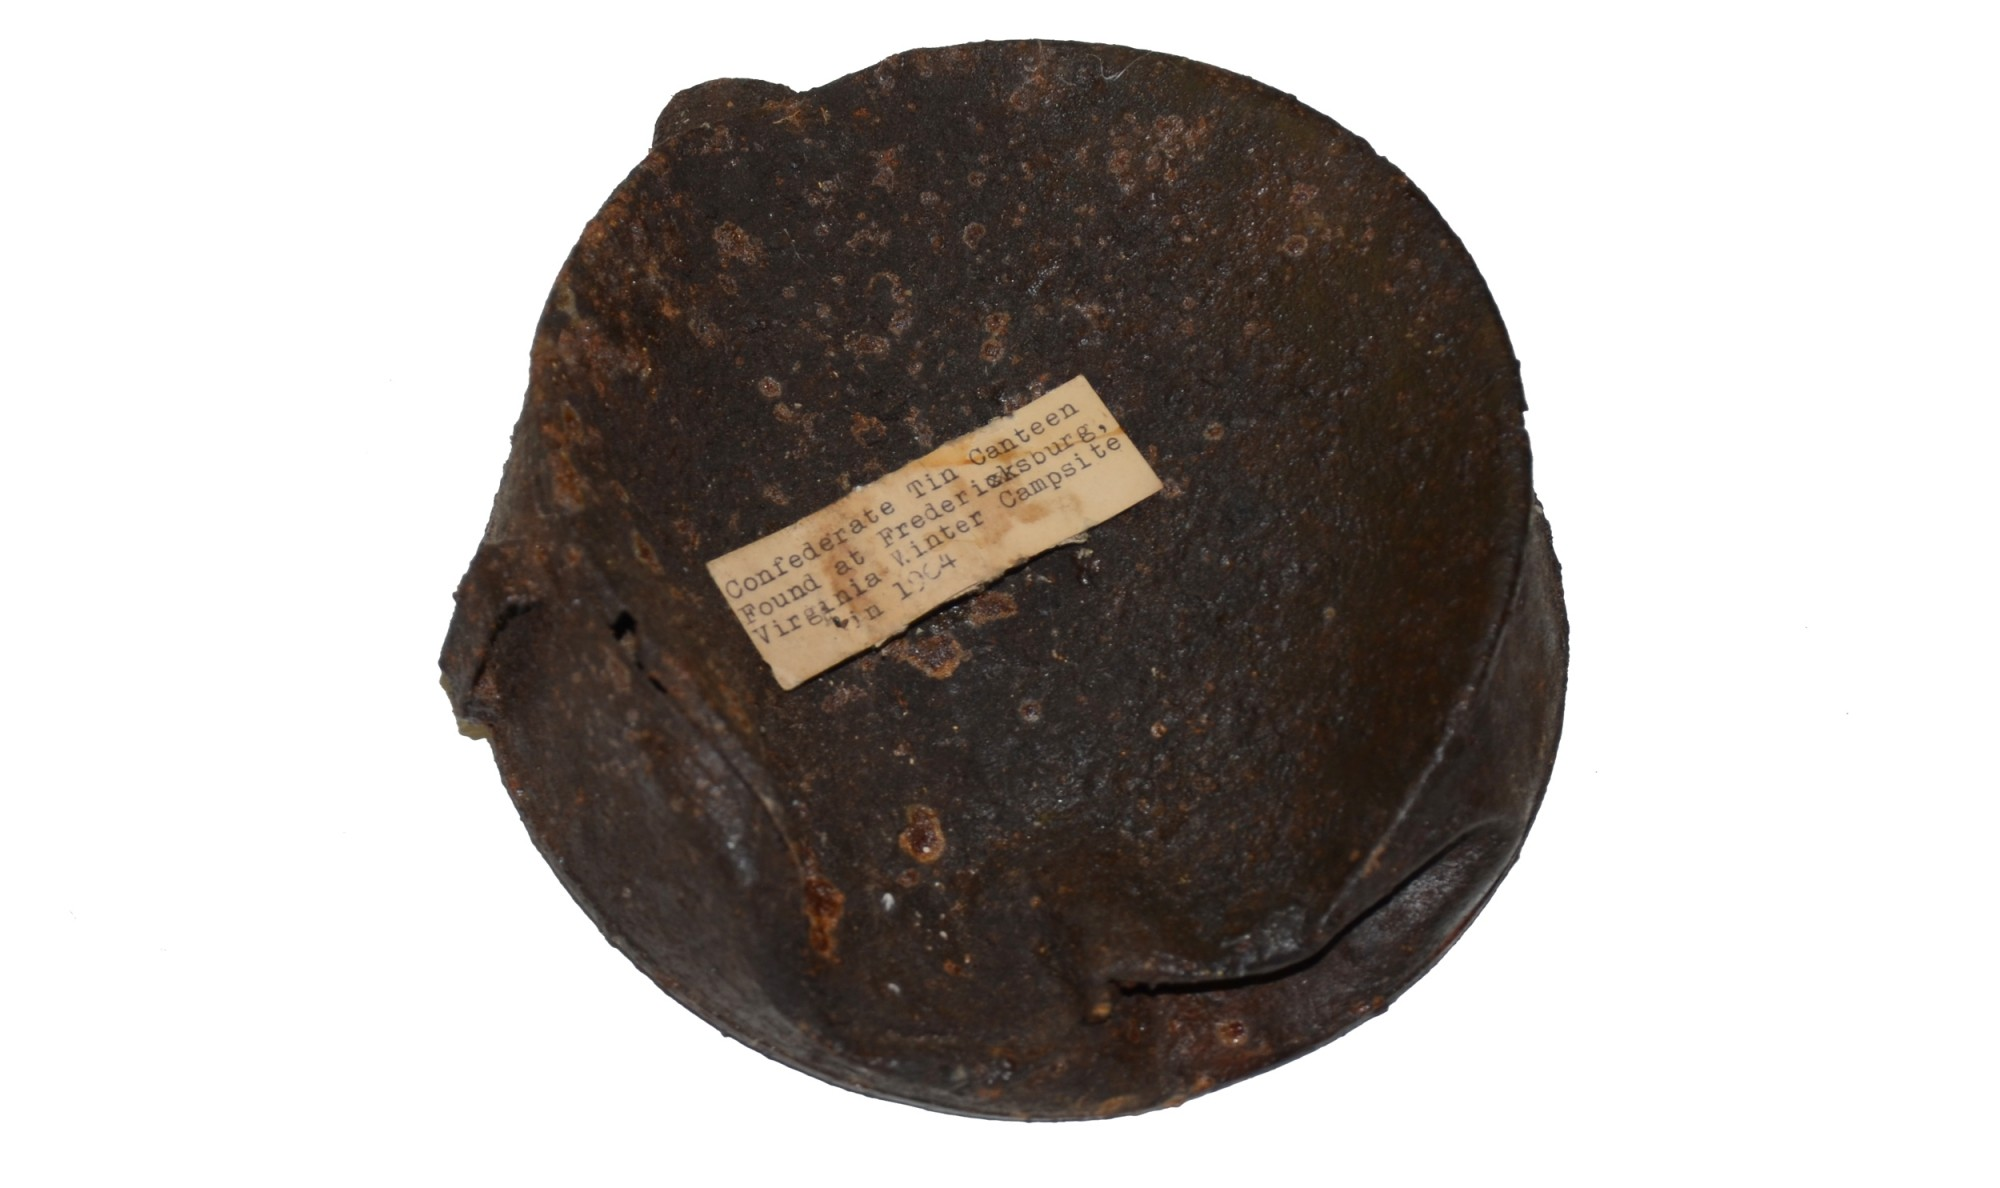 CONFEDERATE TIN DRUM CANTEEN RECOVERED AT FREDERICKSBURG